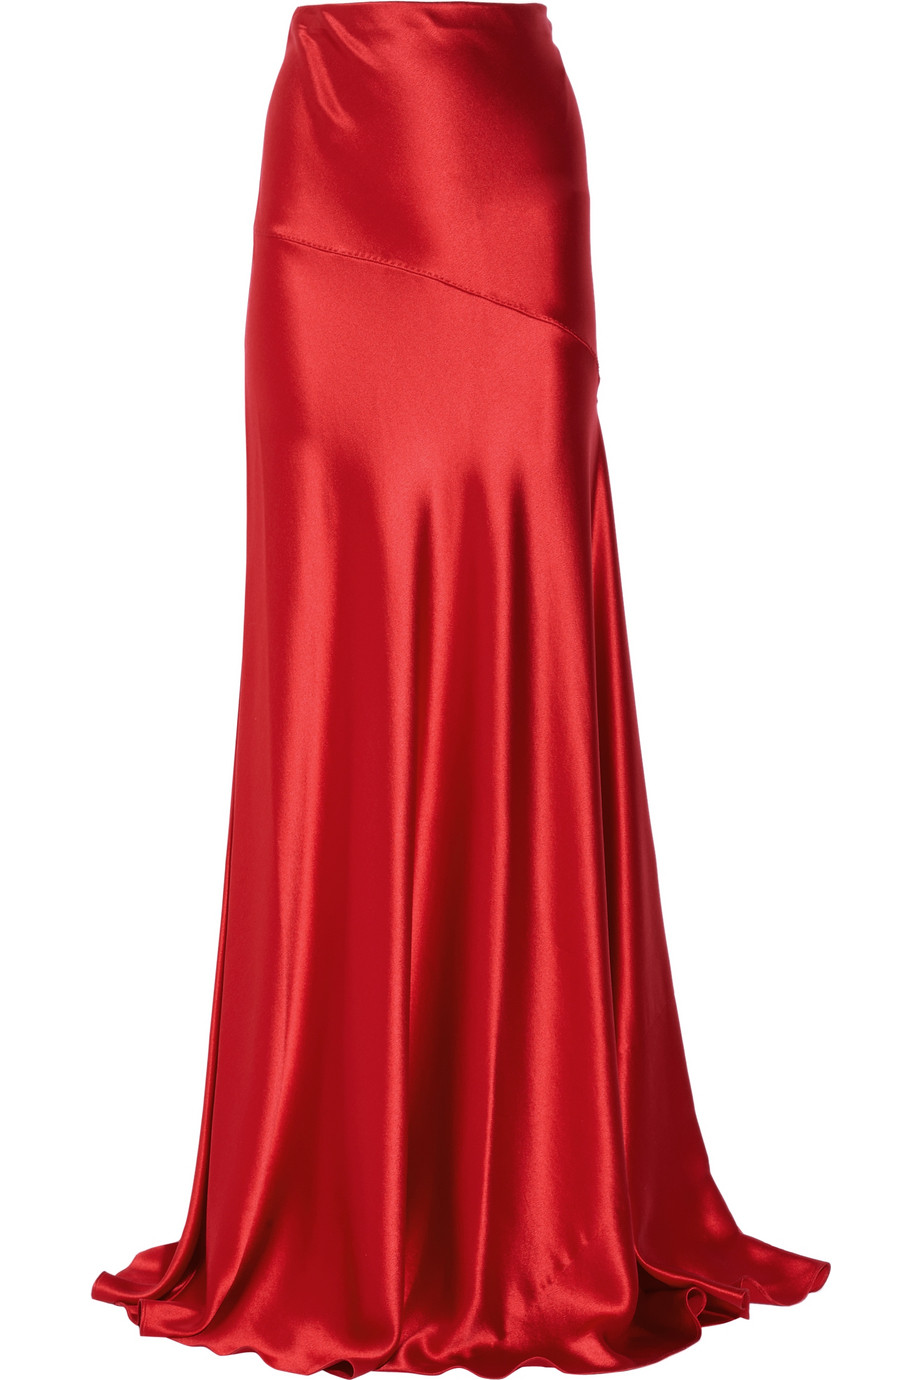 Amanda wakeley Hammered Silk-satin Maxi Skirt in Red | Lyst